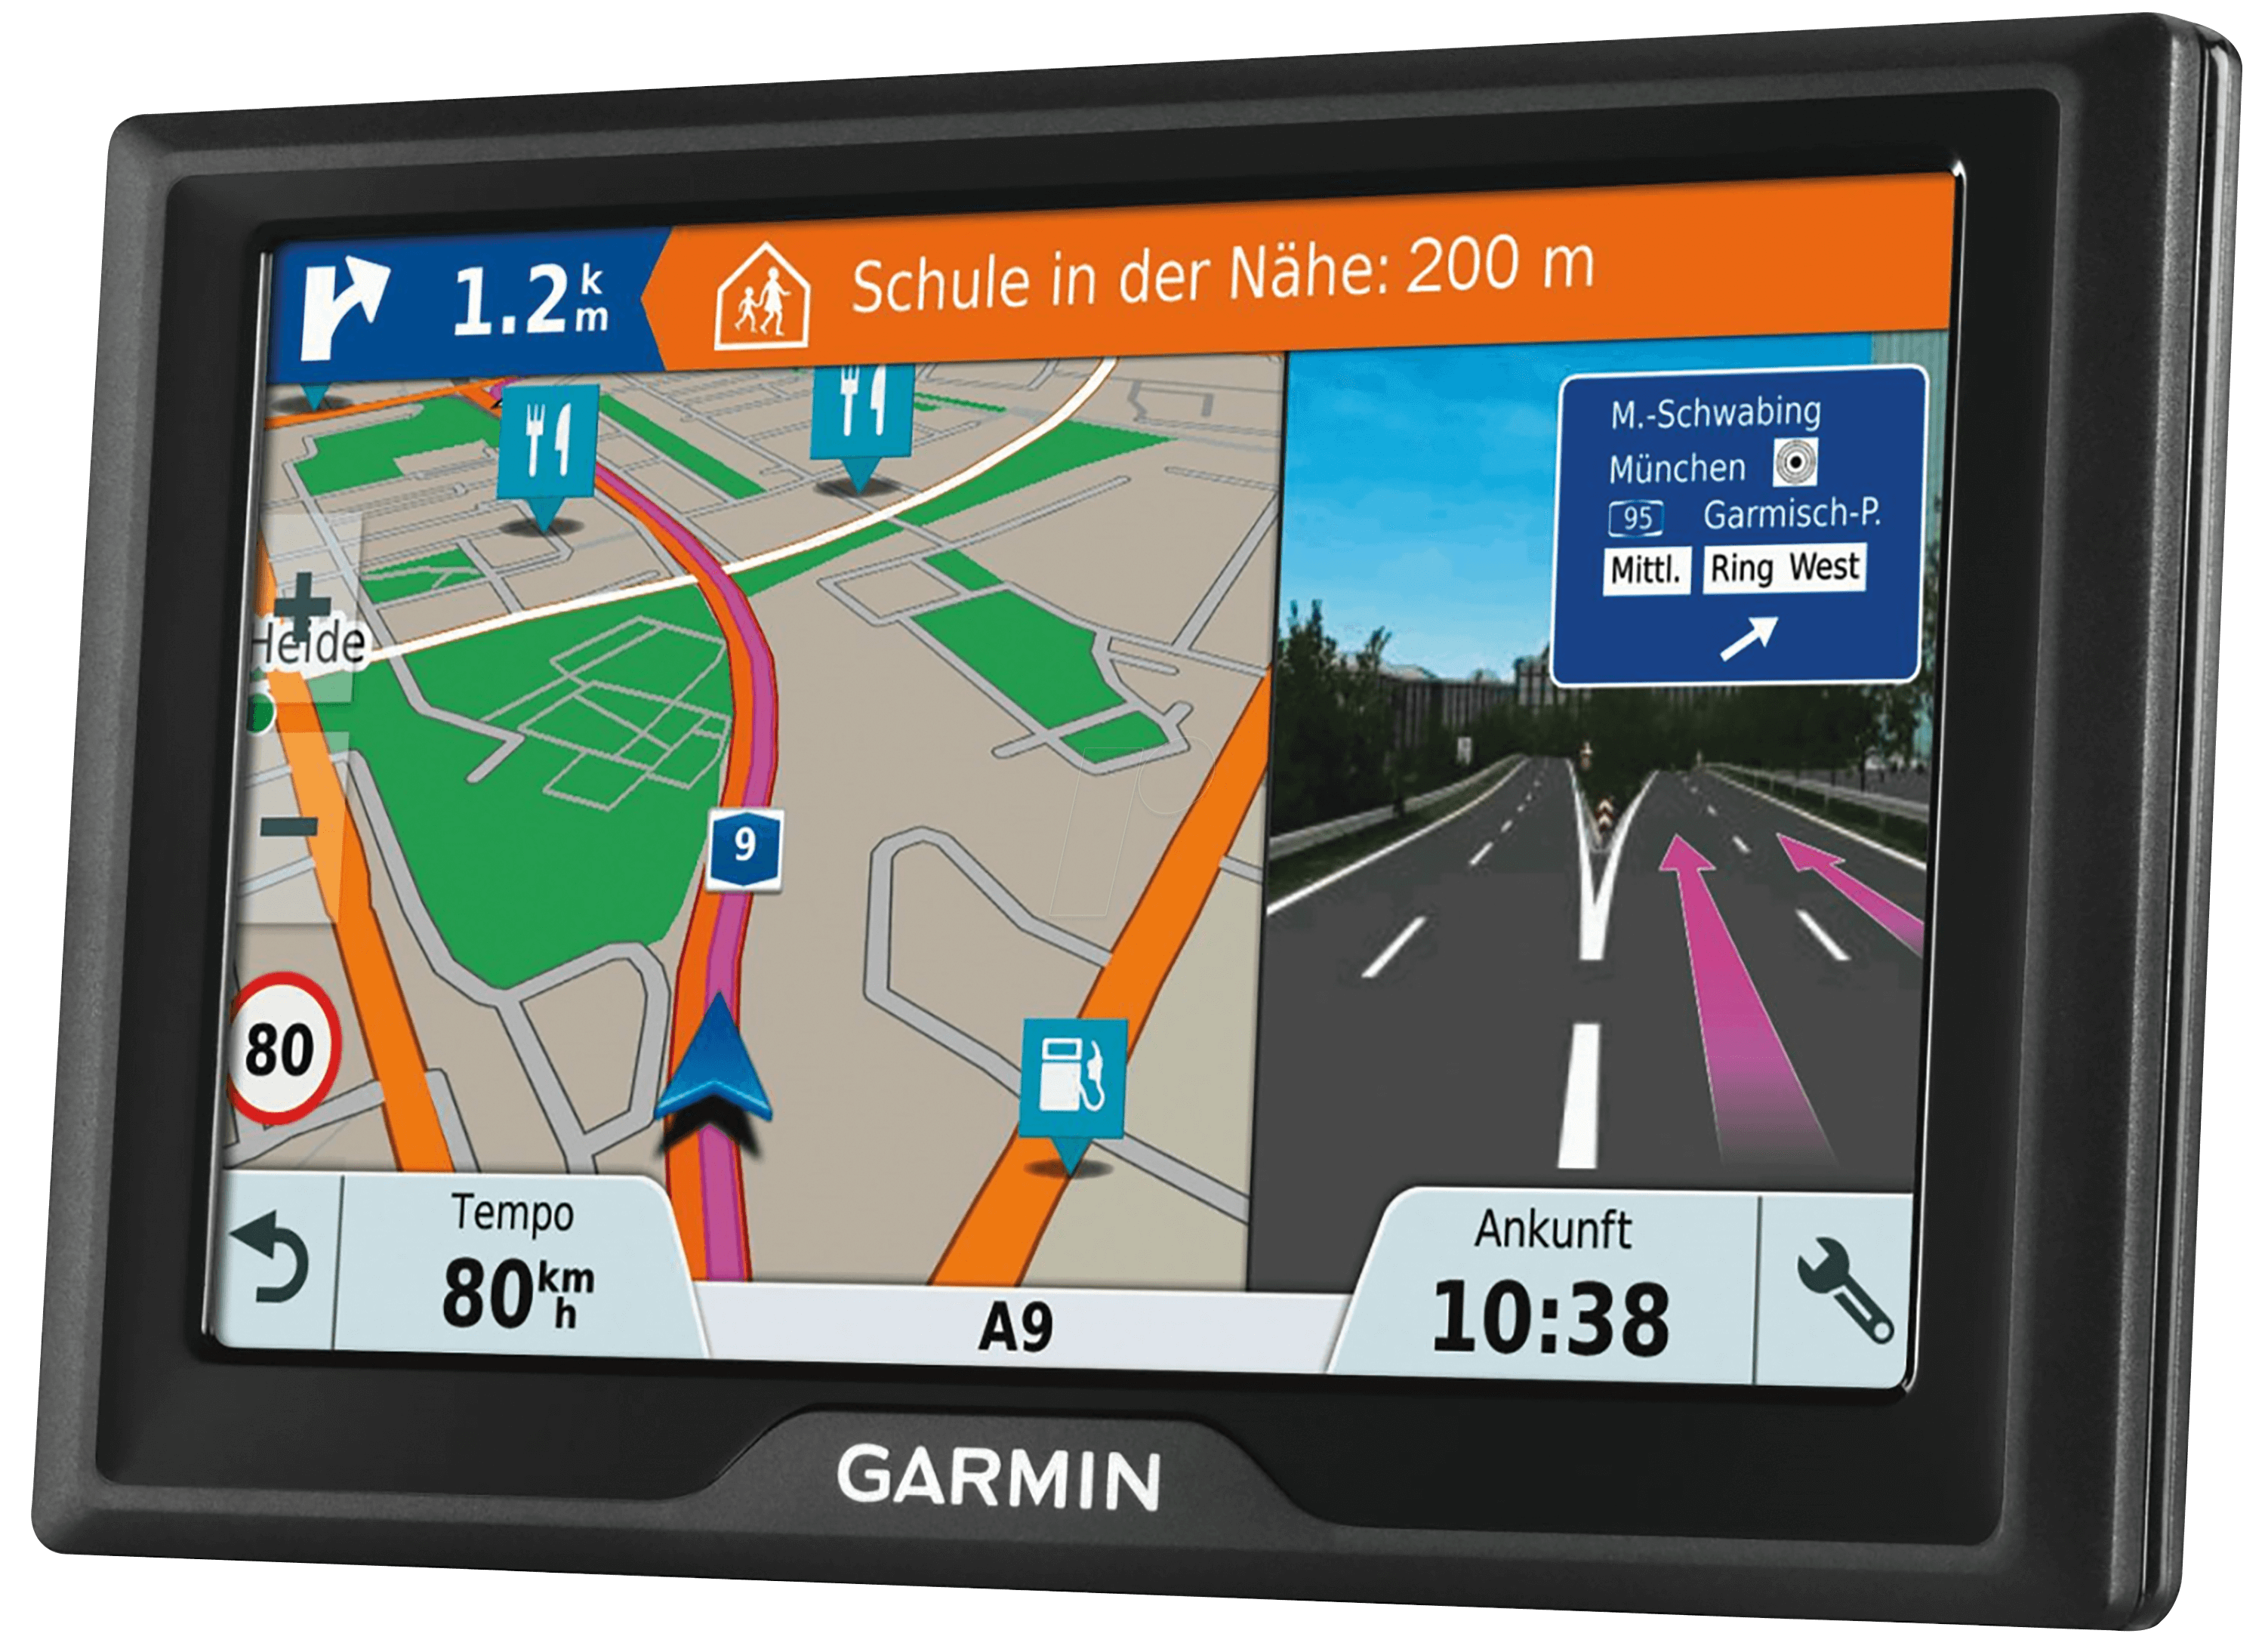 garmin d51ce syst me de navigation 12 70 cm 5 39 39 chez reichelt elektronik. Black Bedroom Furniture Sets. Home Design Ideas